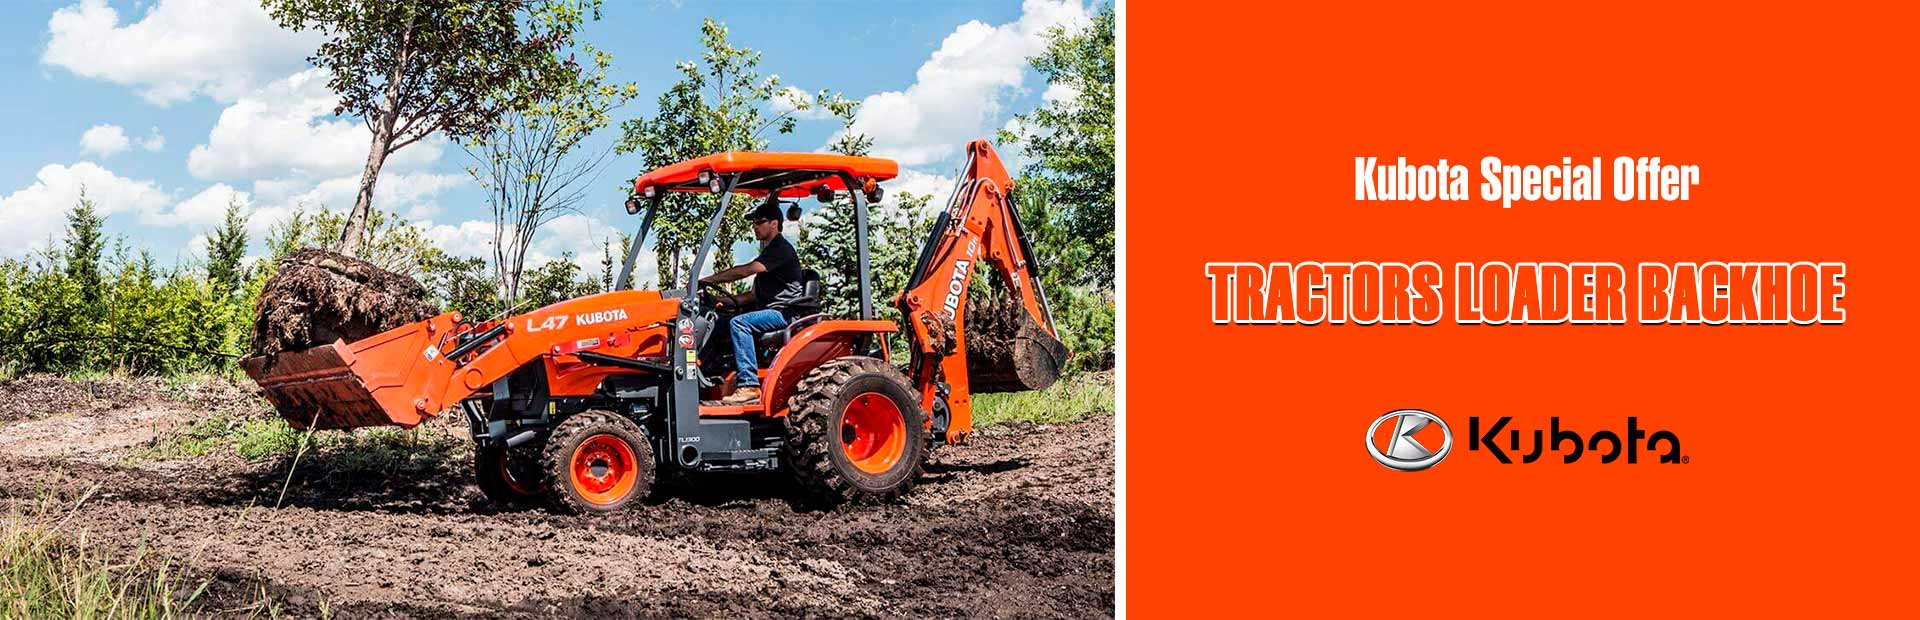 Kubota: Kubota Special Offer - Tractors Loader Backhoe